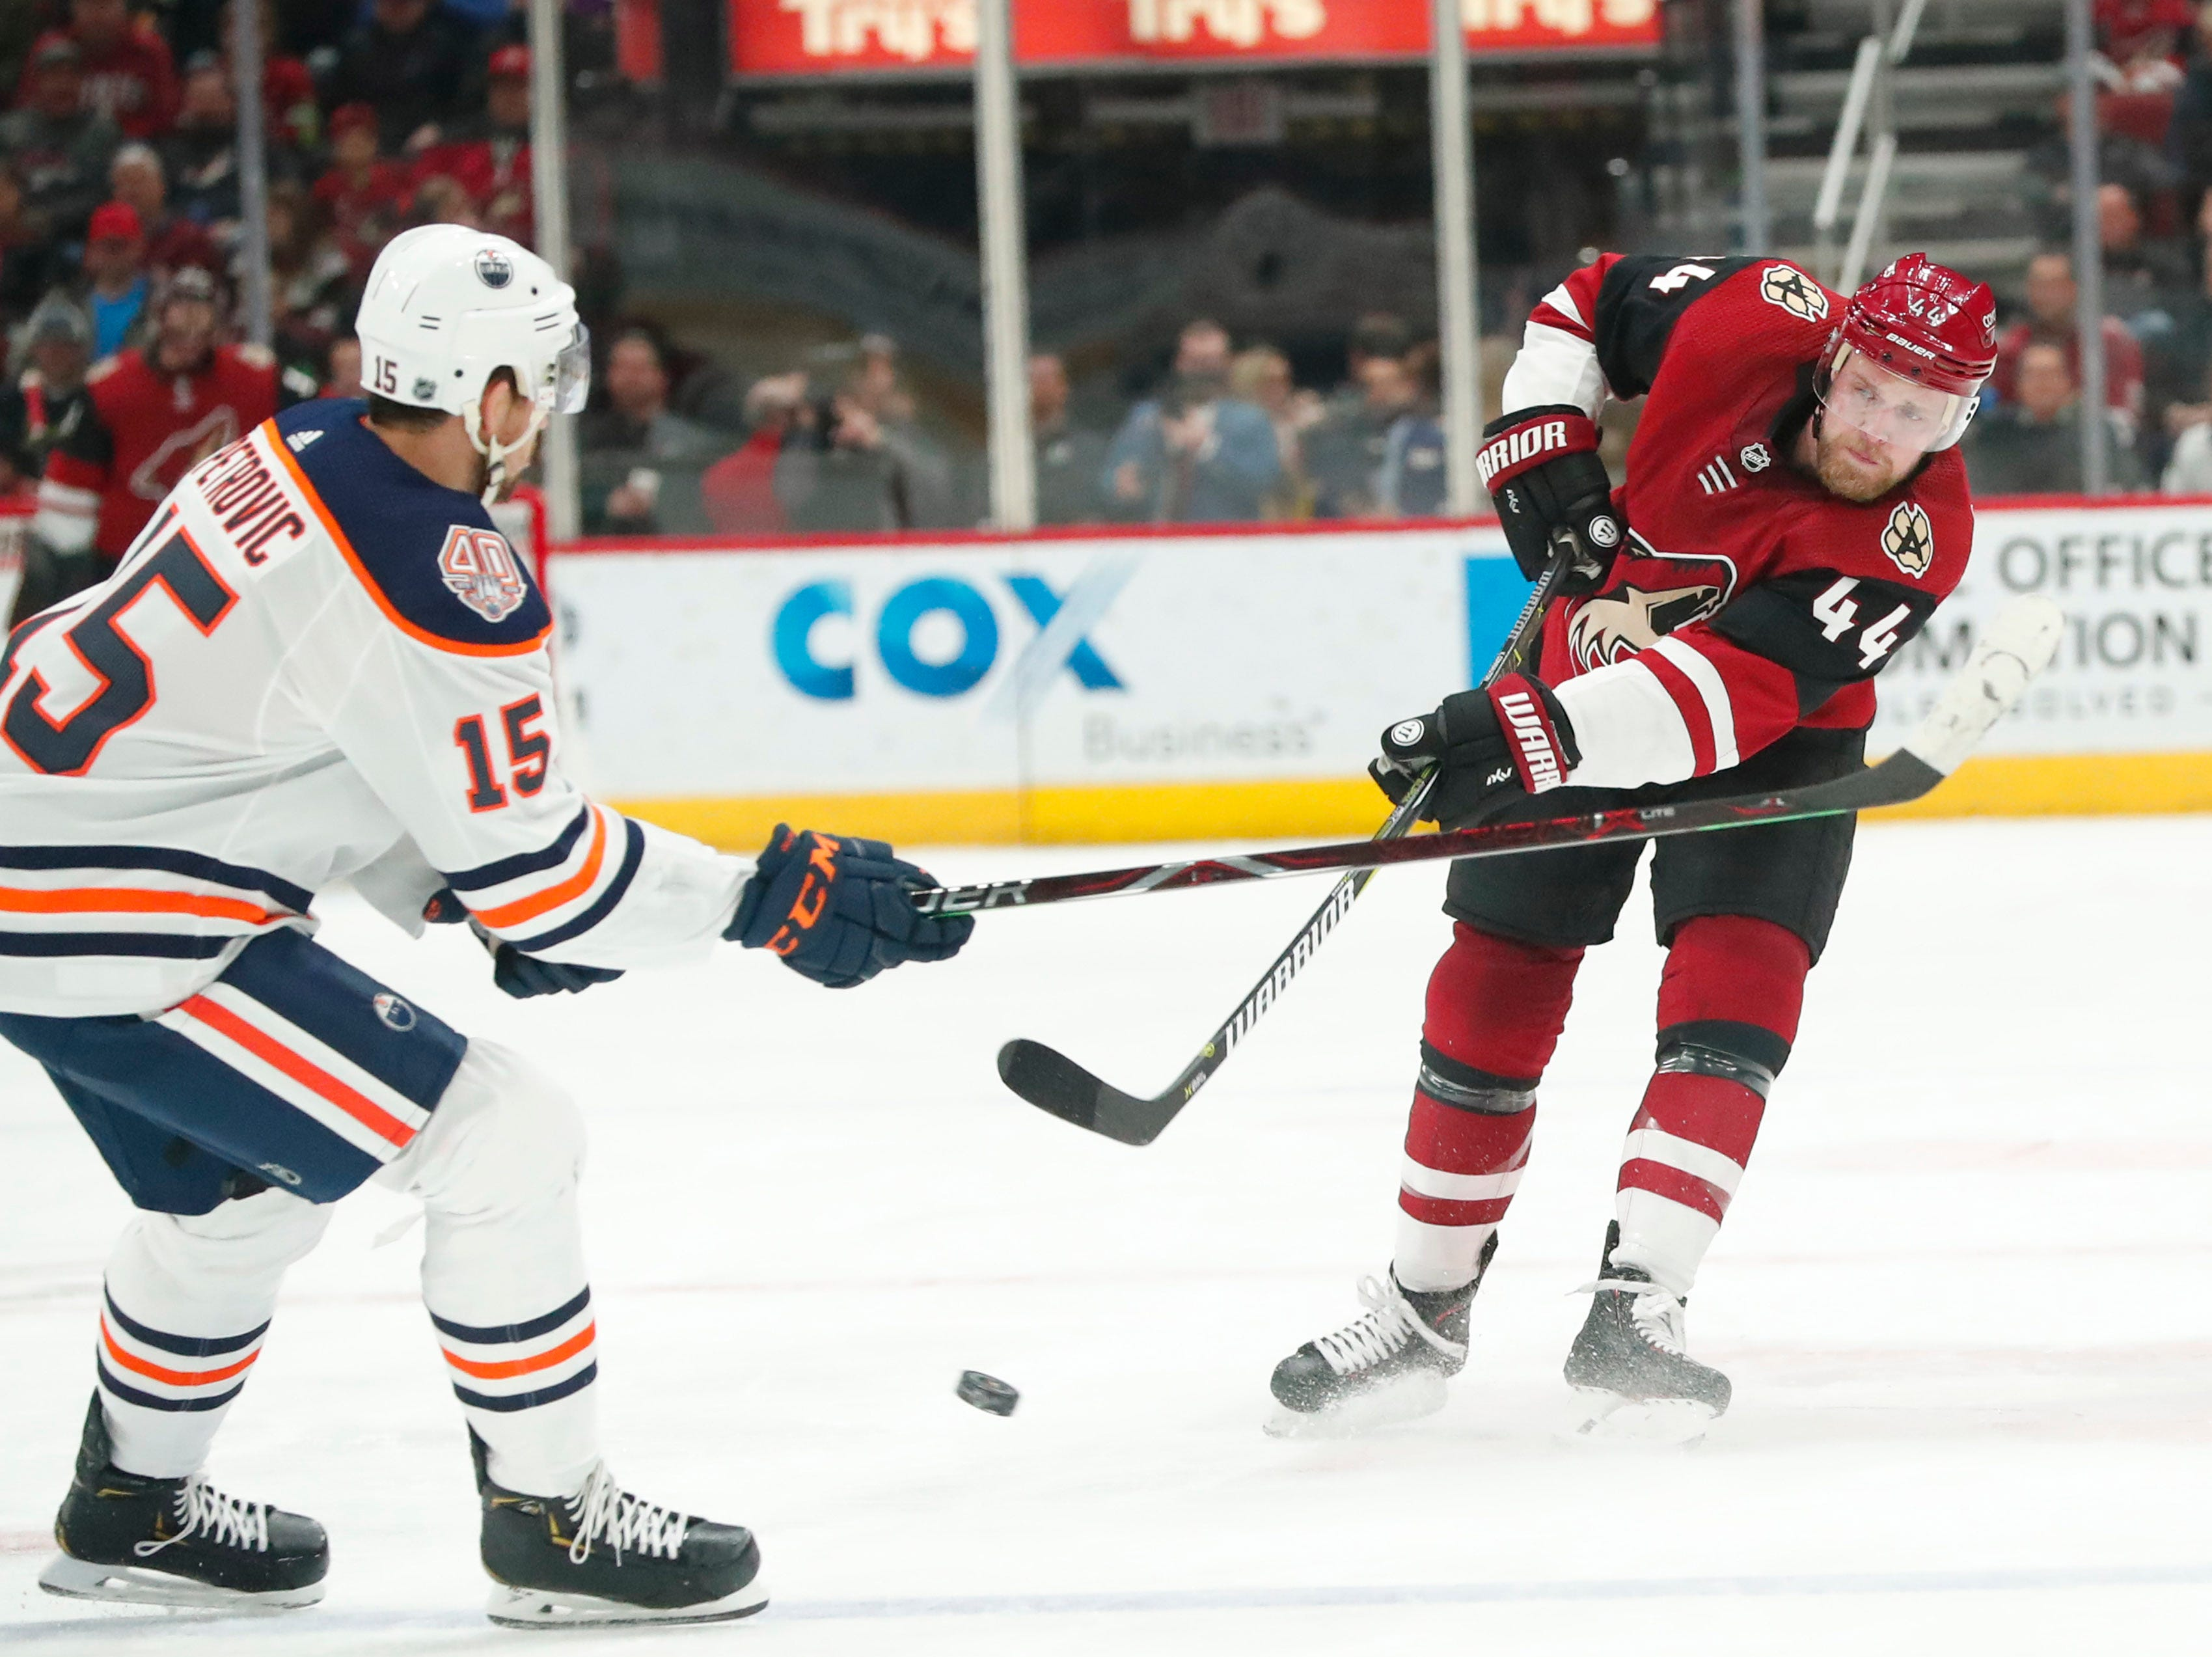 Arizona Coyotes defenseman Kevin Connauton (44) dumps the puck in against Edmonton Oilers defenseman Alexander Petrovic (15) during the second period in Glendale January 2, 2019.